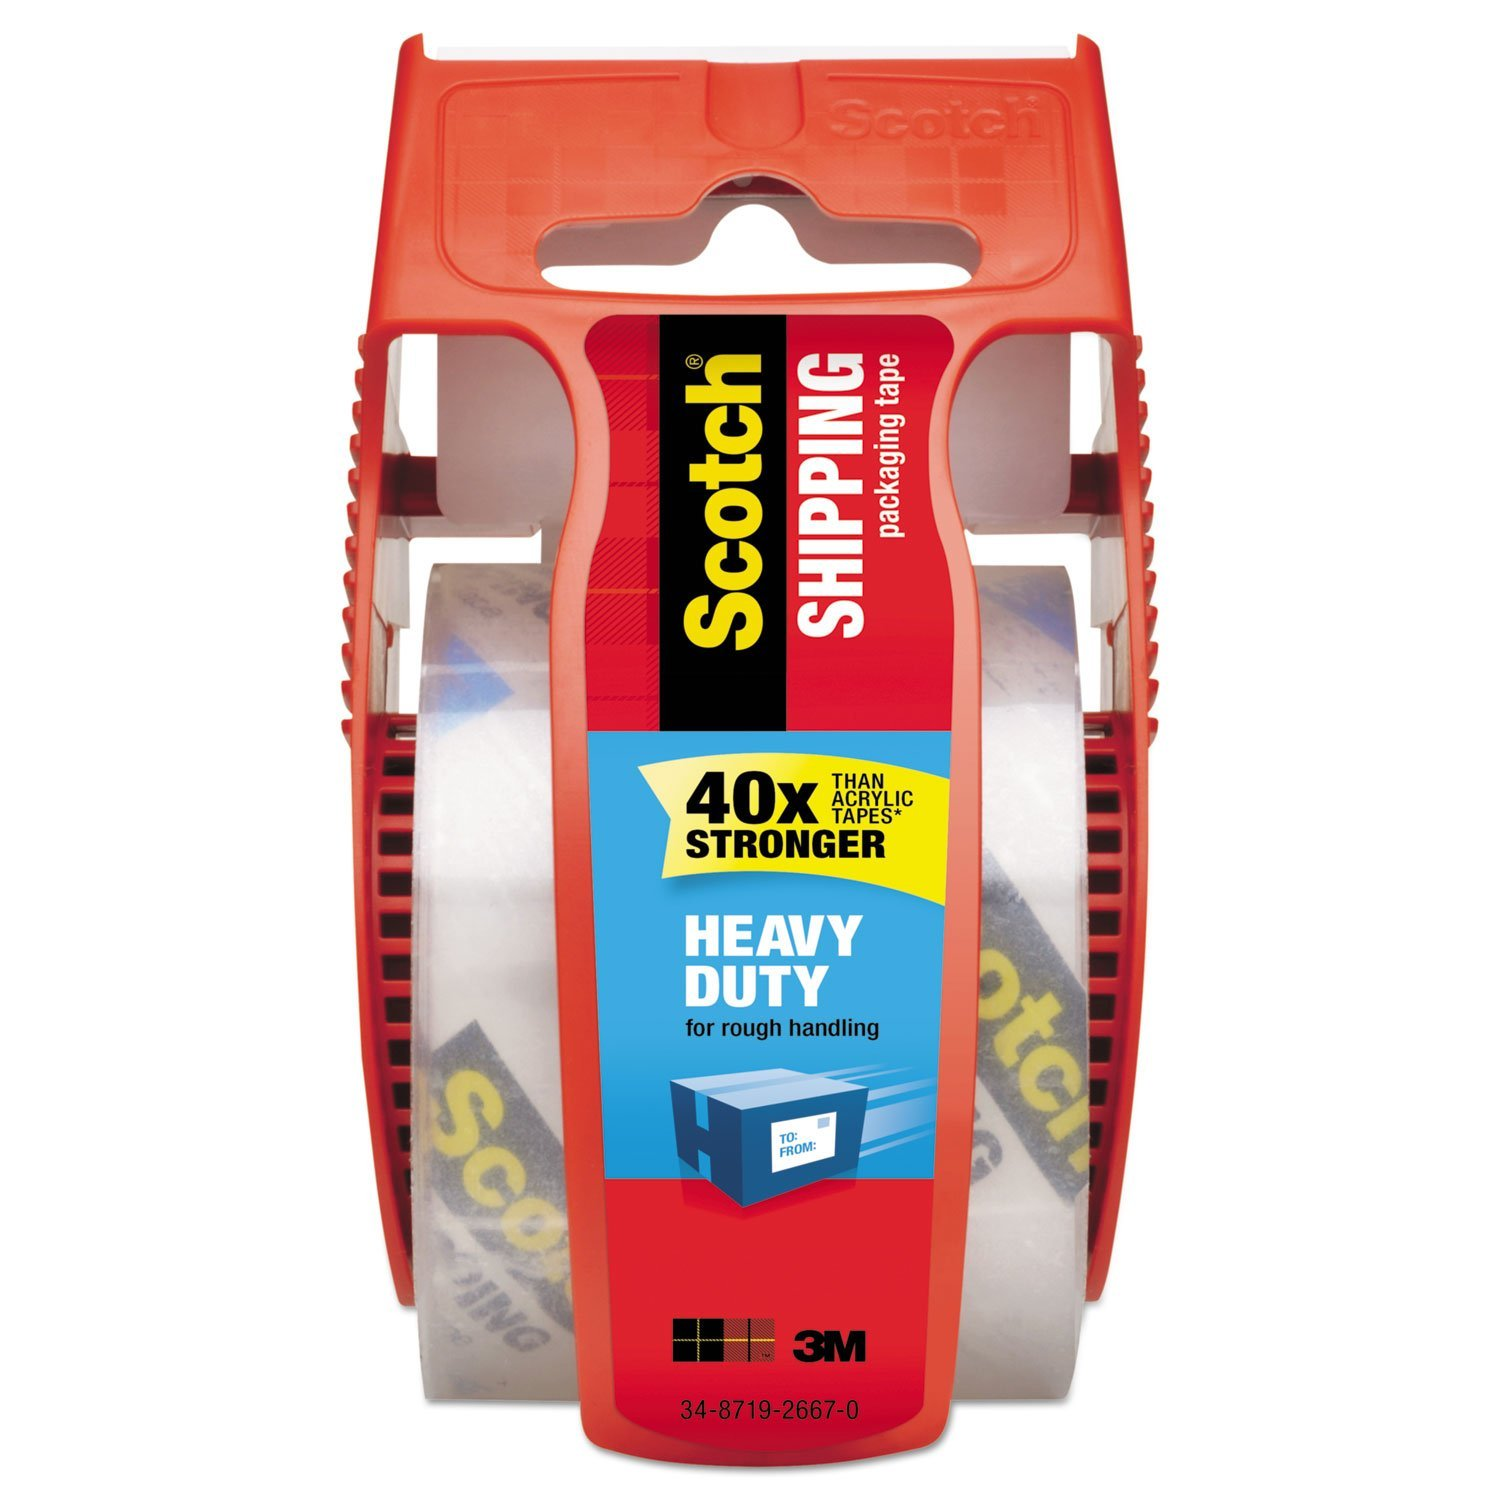 Scotch Heavy Duty Packaging Tape, 1.88 Inches x 800 Inches, 1 Roll (142) 3M Office Products